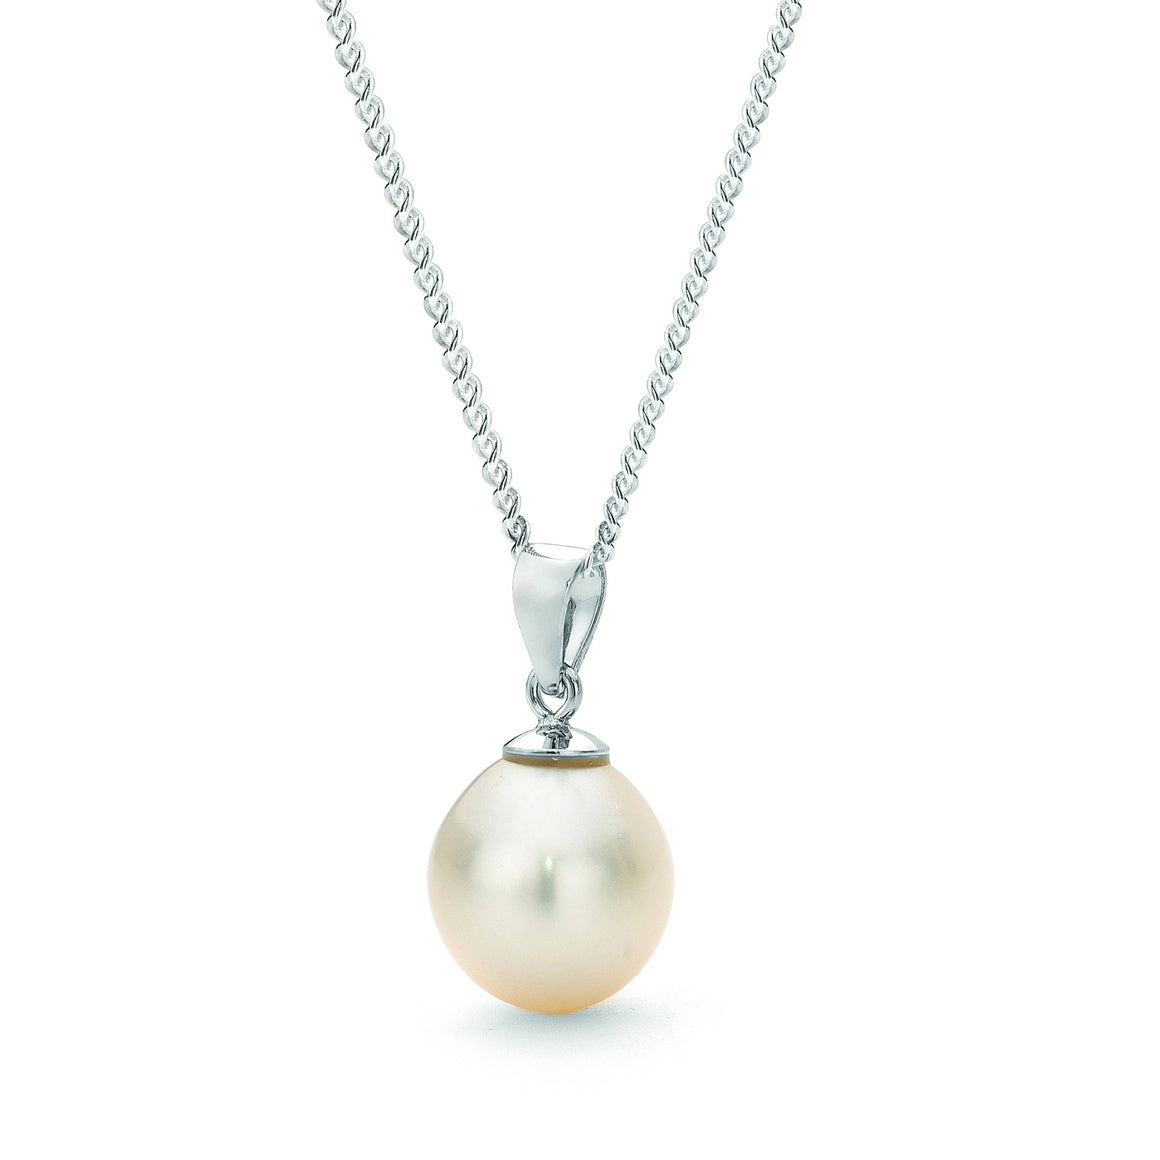 Ikecho Sterling Silver White 9-9.5mm Drop Freshwater Pearl Pendant with Sterling Silver Chain